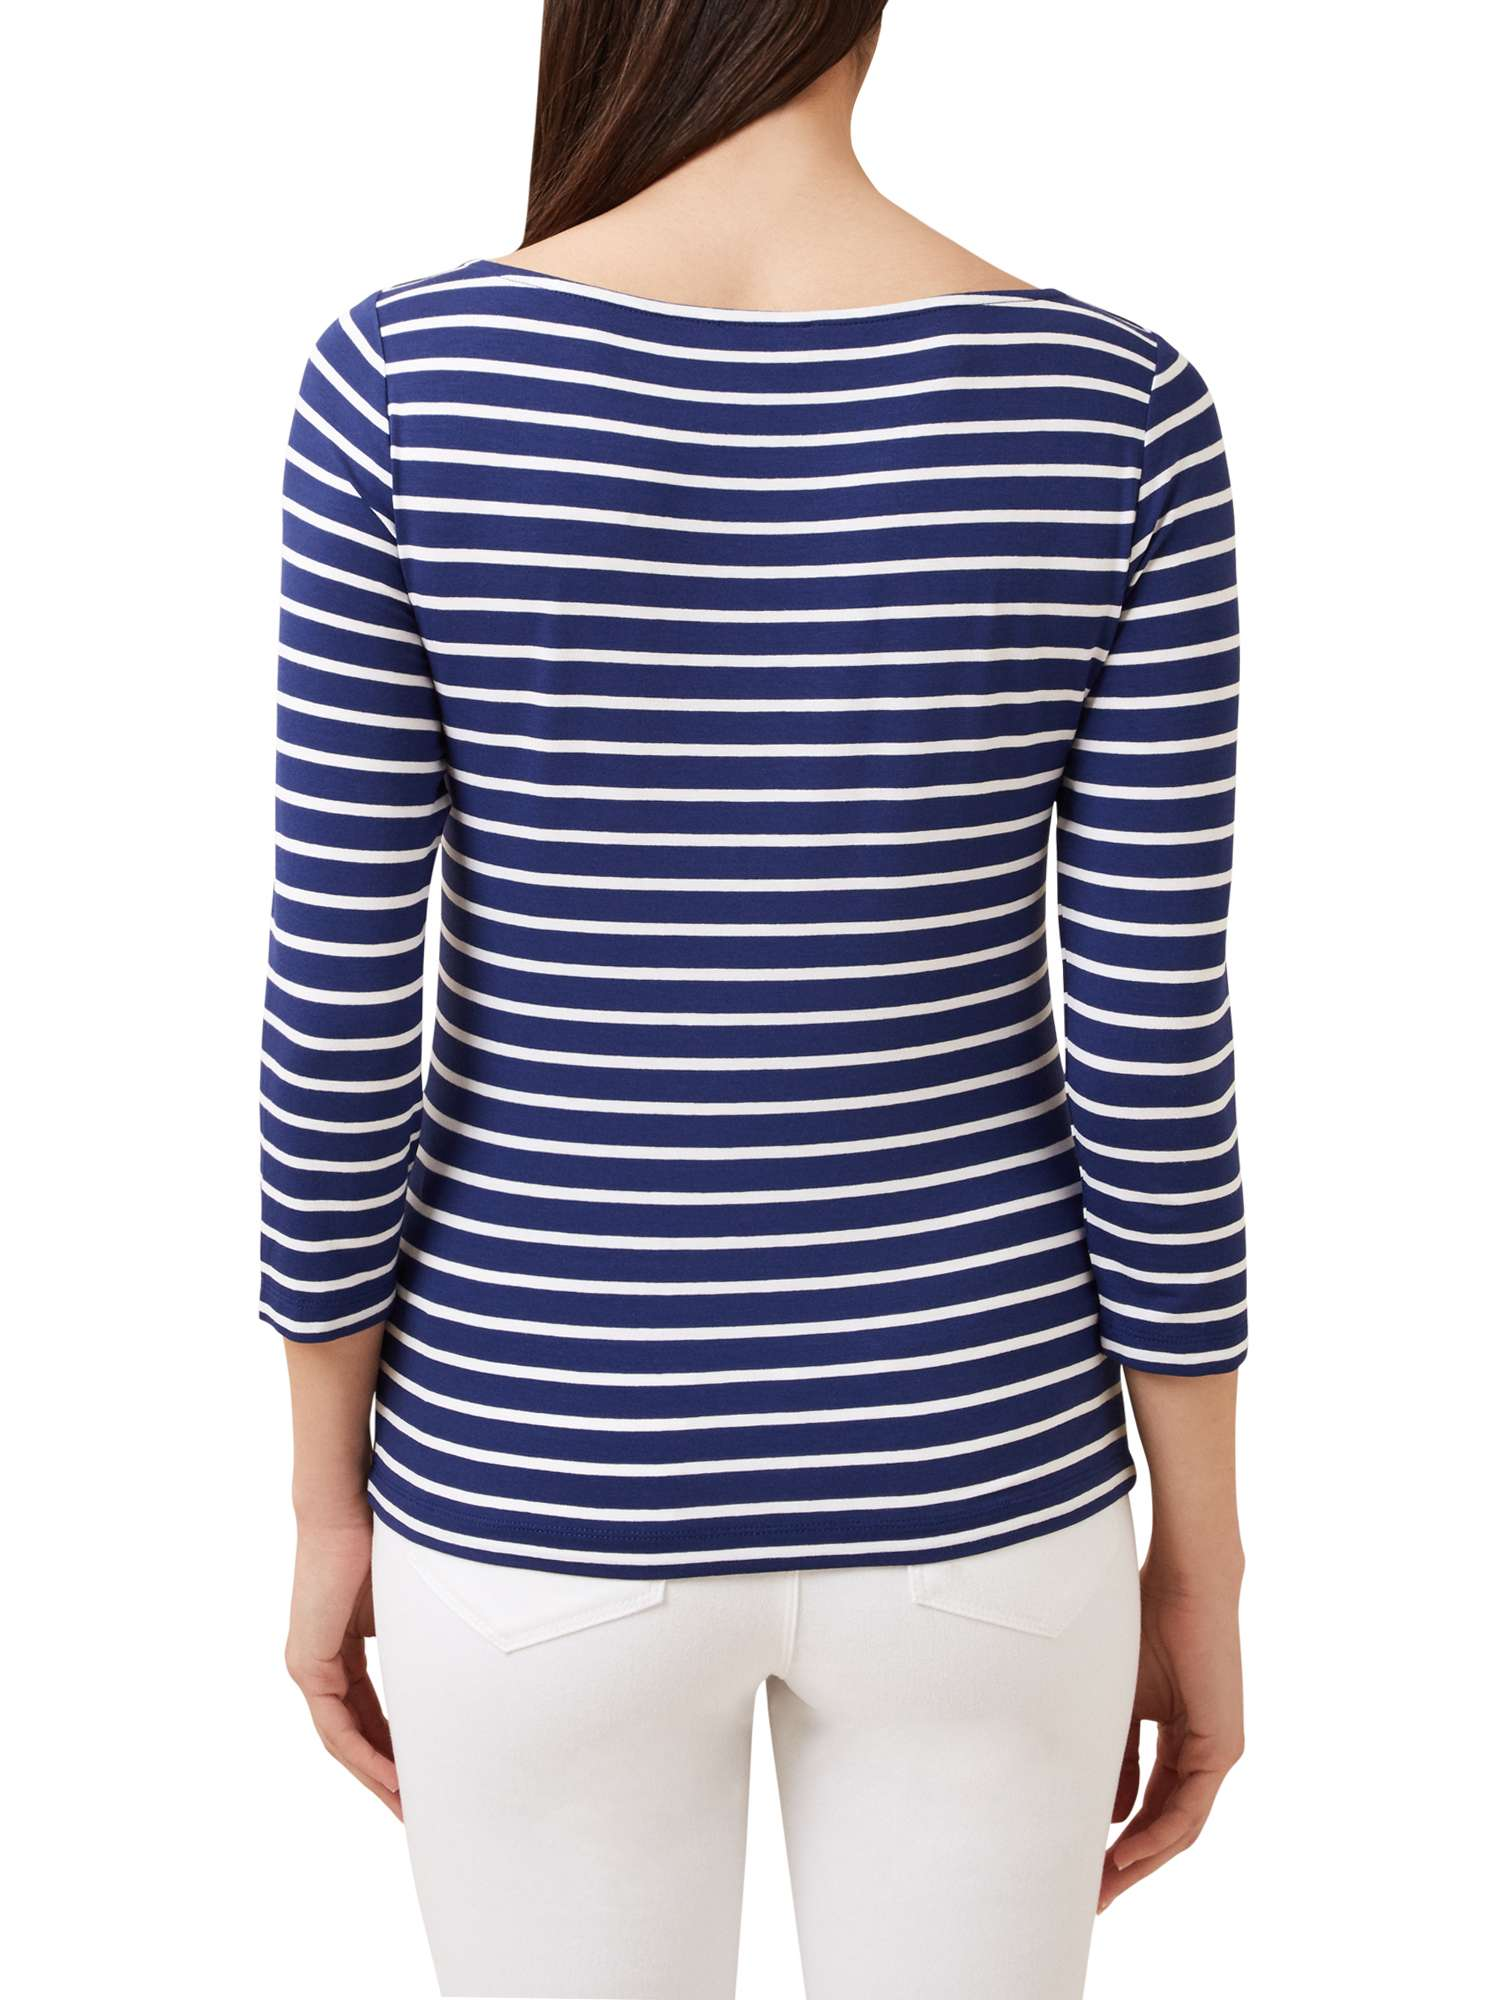 Sonya Striped Sonya Hobbs Hobbs Top Striped Striped Hobbs Top wqwHIat